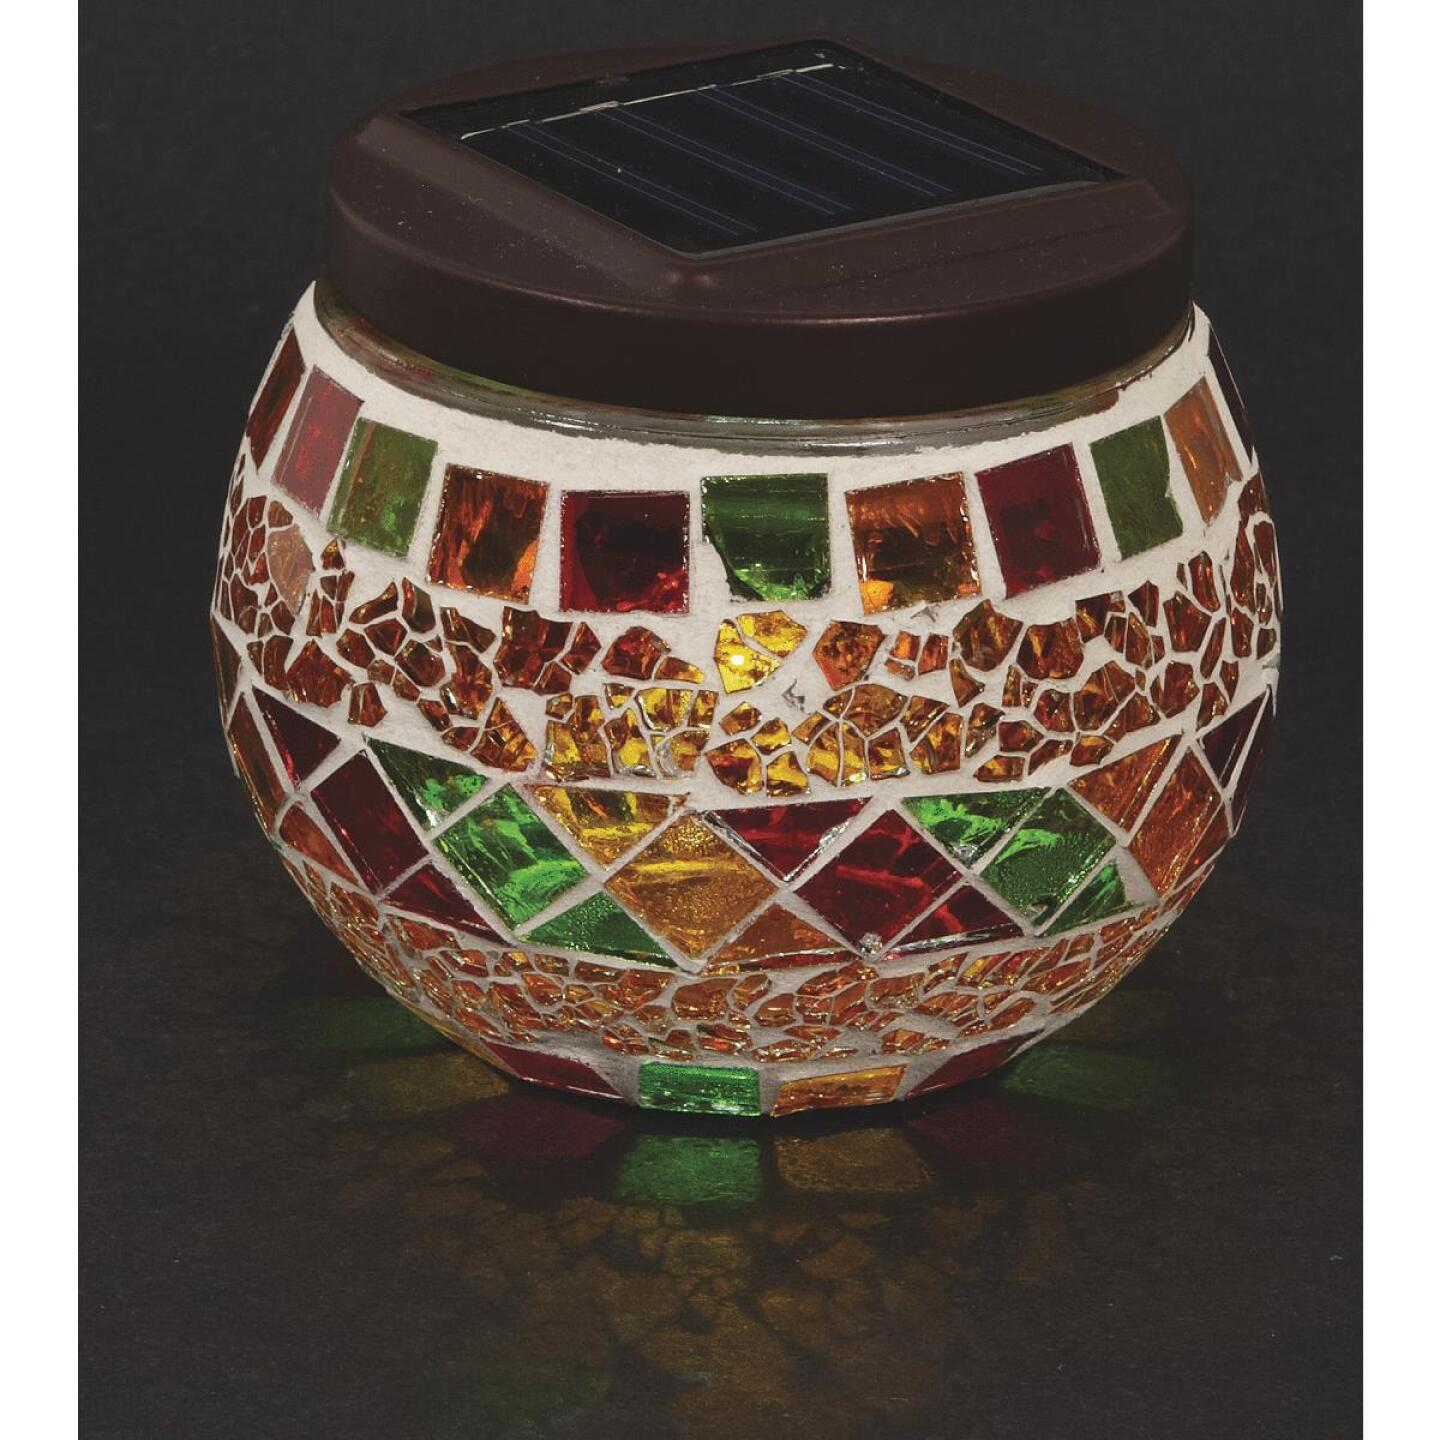 Outdoor Expressions 3.5 In. H. x 3.5 In. Dia. Autumn Harvest Tile Tabletop Solar Patio Light Image 5